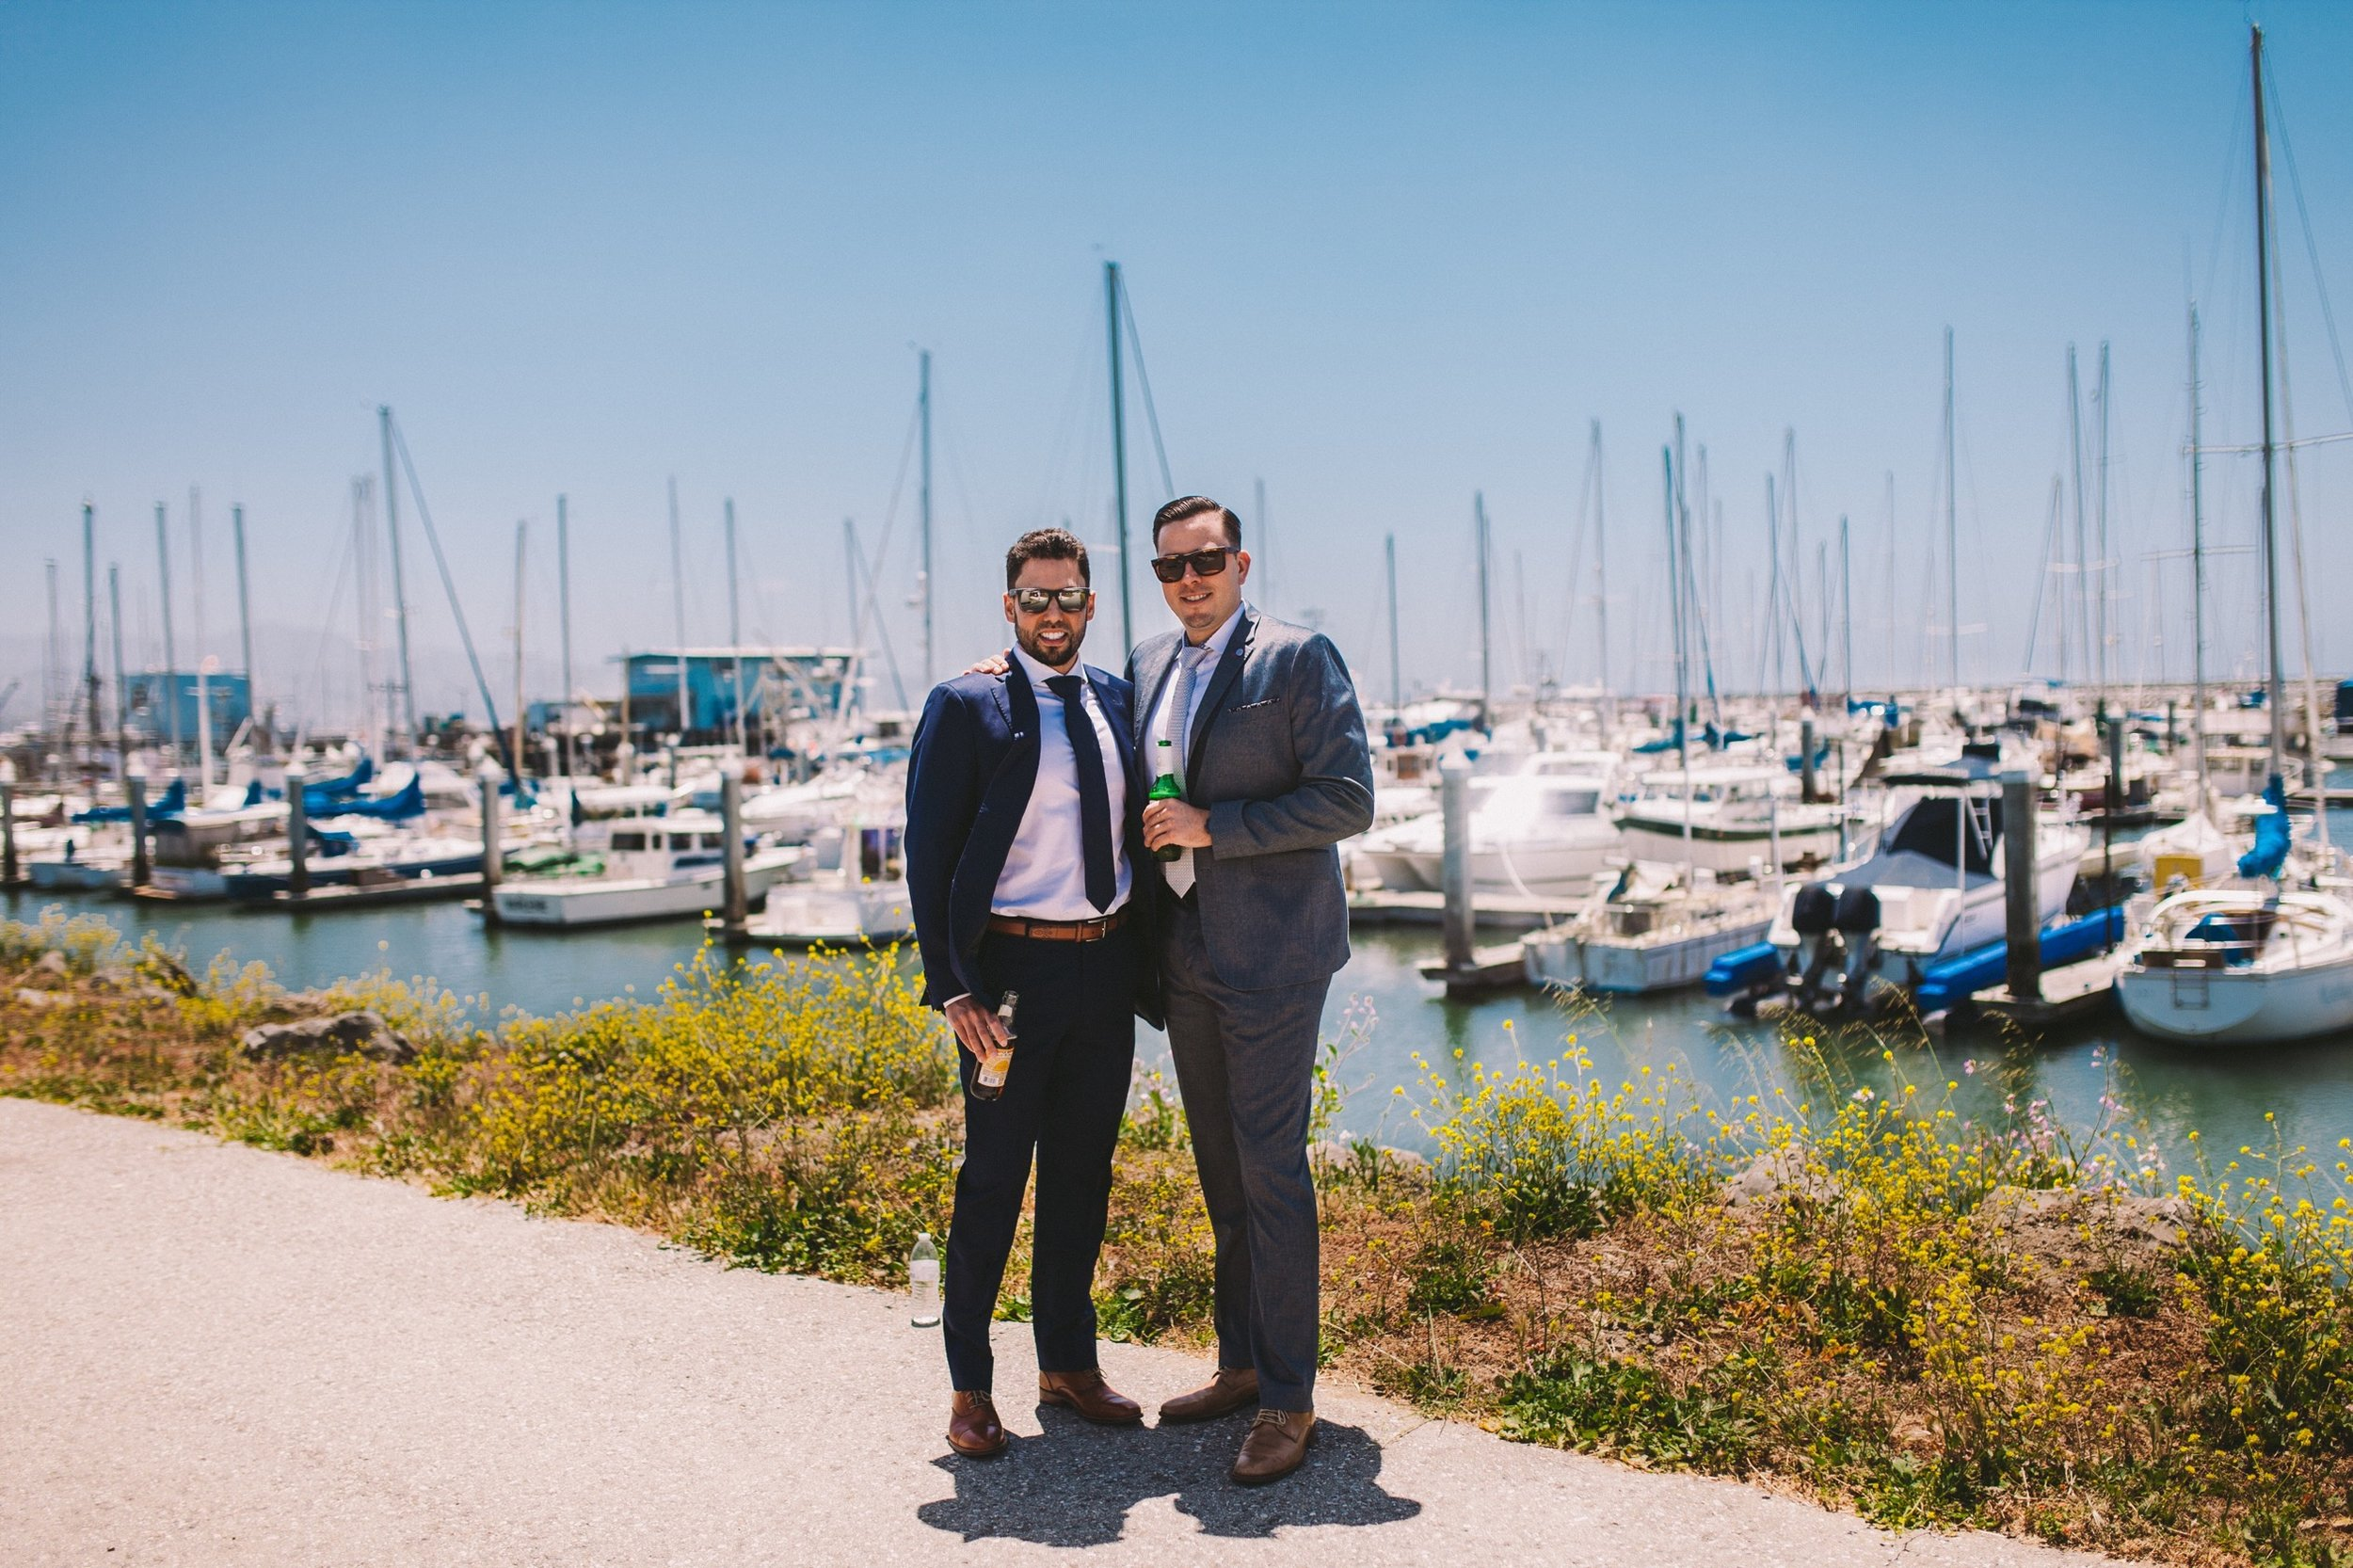 Groom & Best Man Portrait Half Moon Bay by Ocean